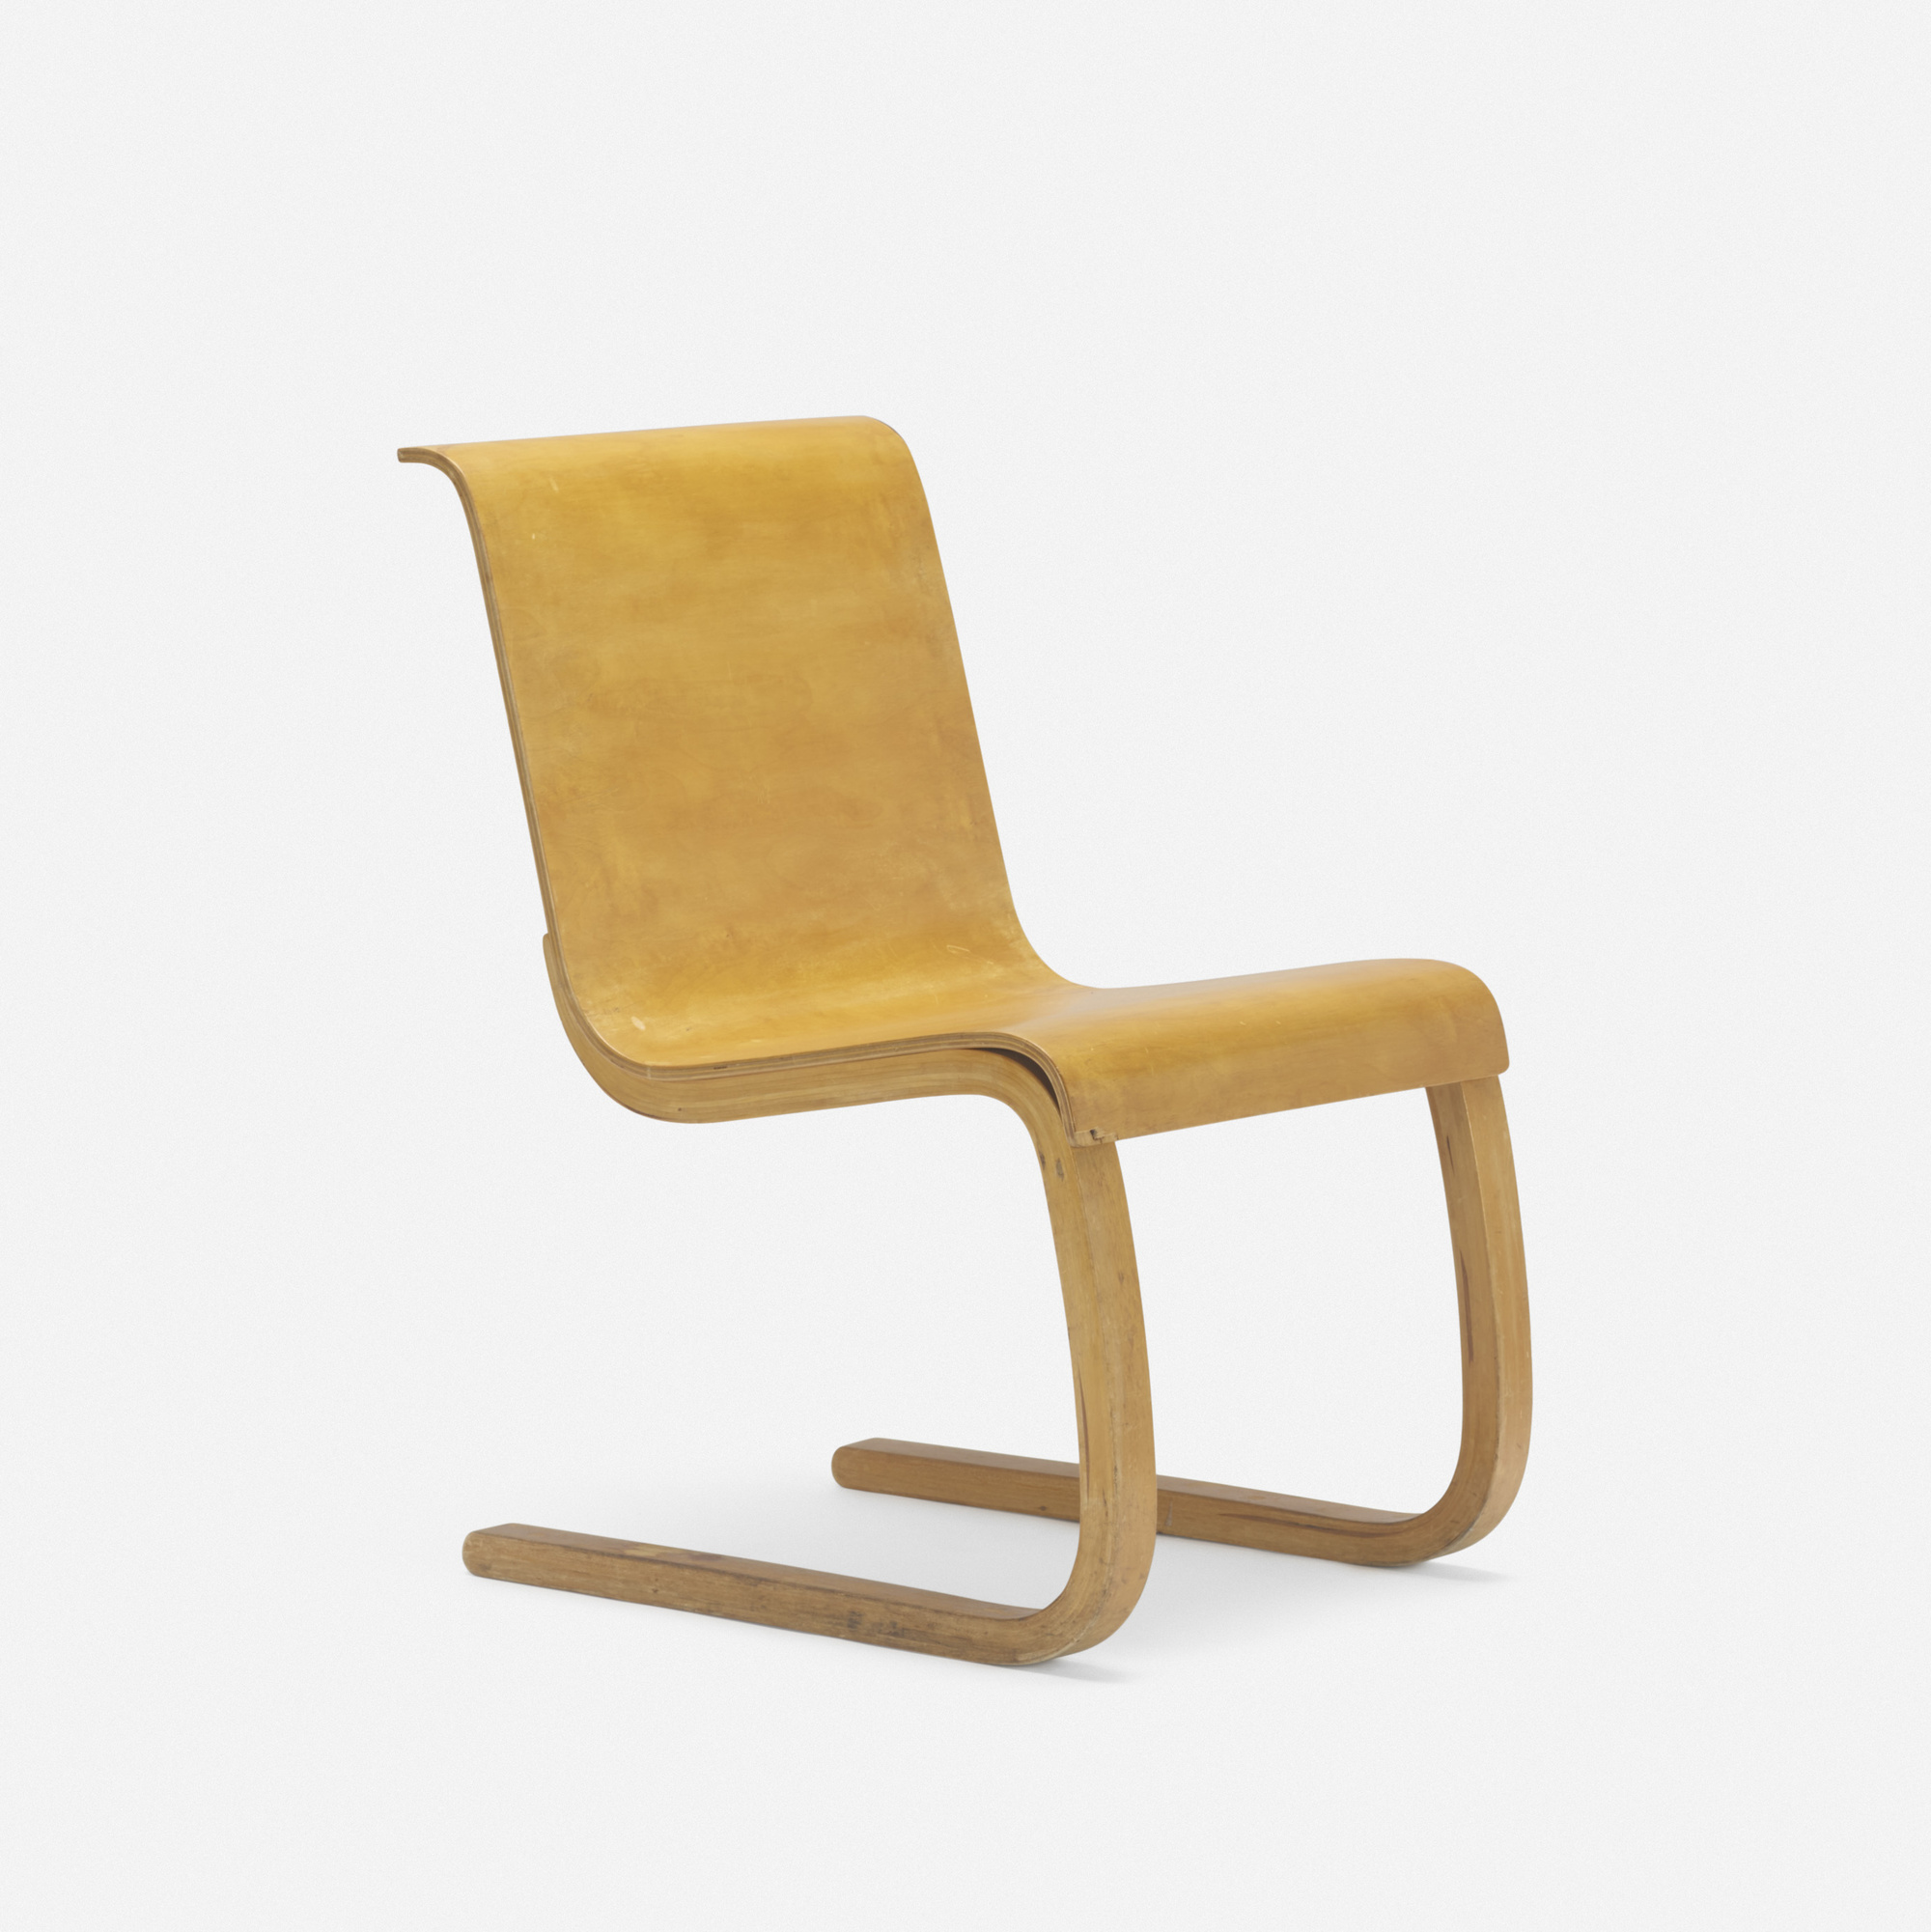 Genial 408: Alvar Aalto / Early Cantilever Chair, Model 21 (1 Of 3)